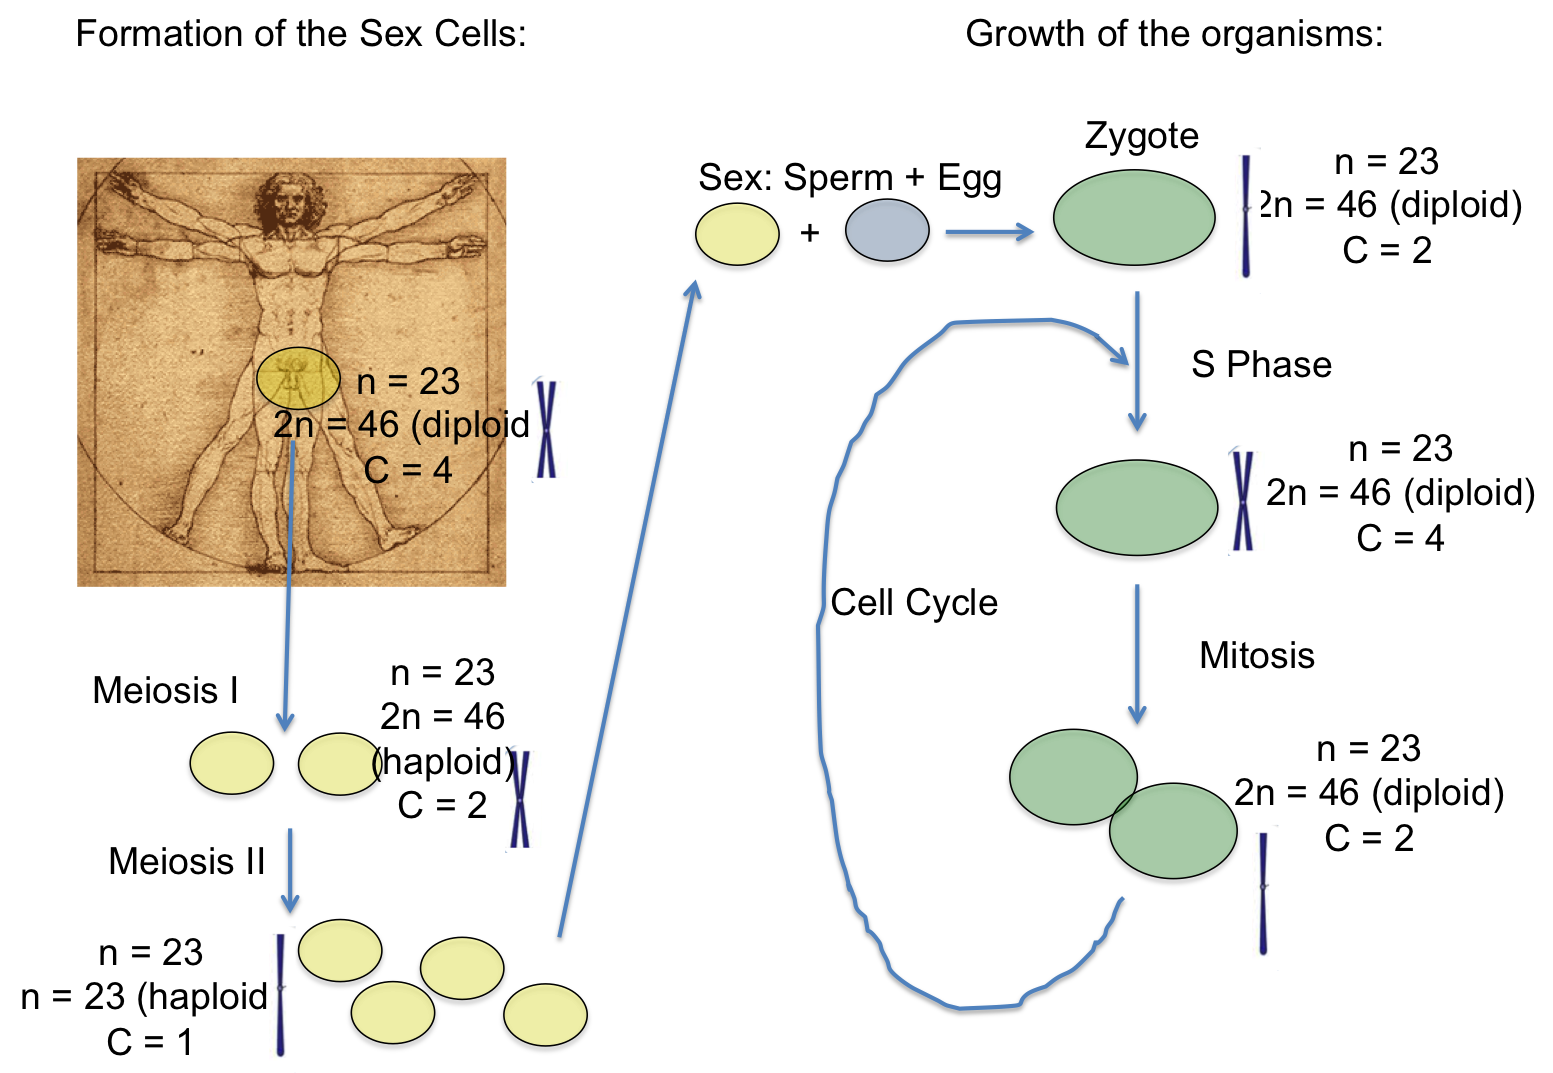 meiosis downhousesoftware 1 comment